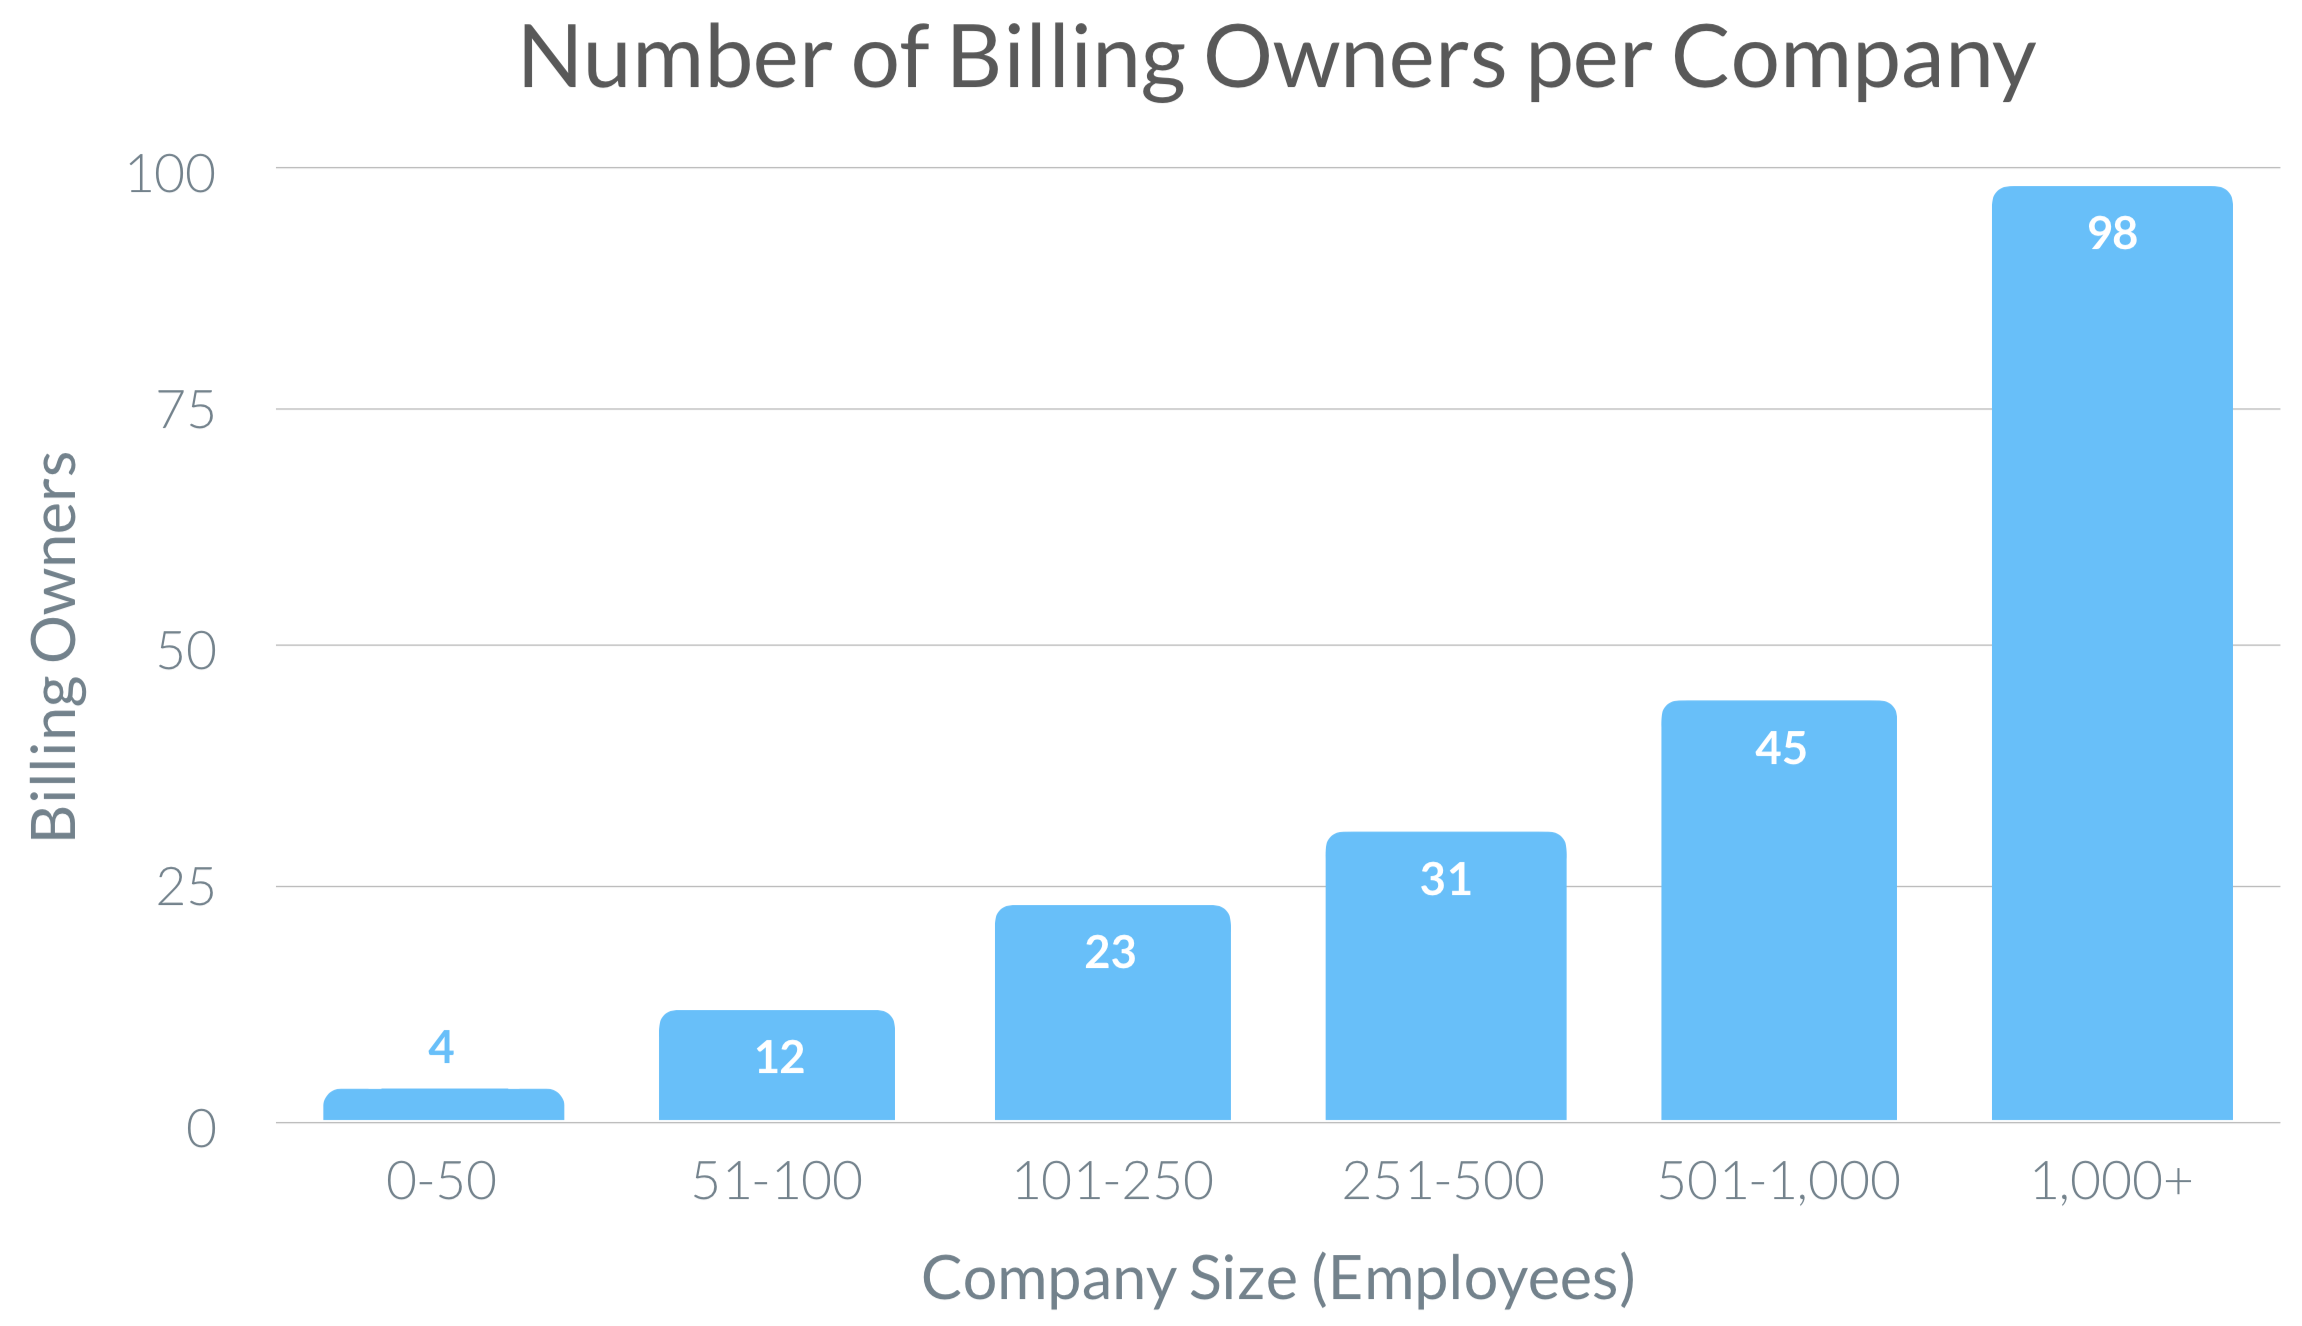 SaaS Trends in Number of Billing Owners per Company